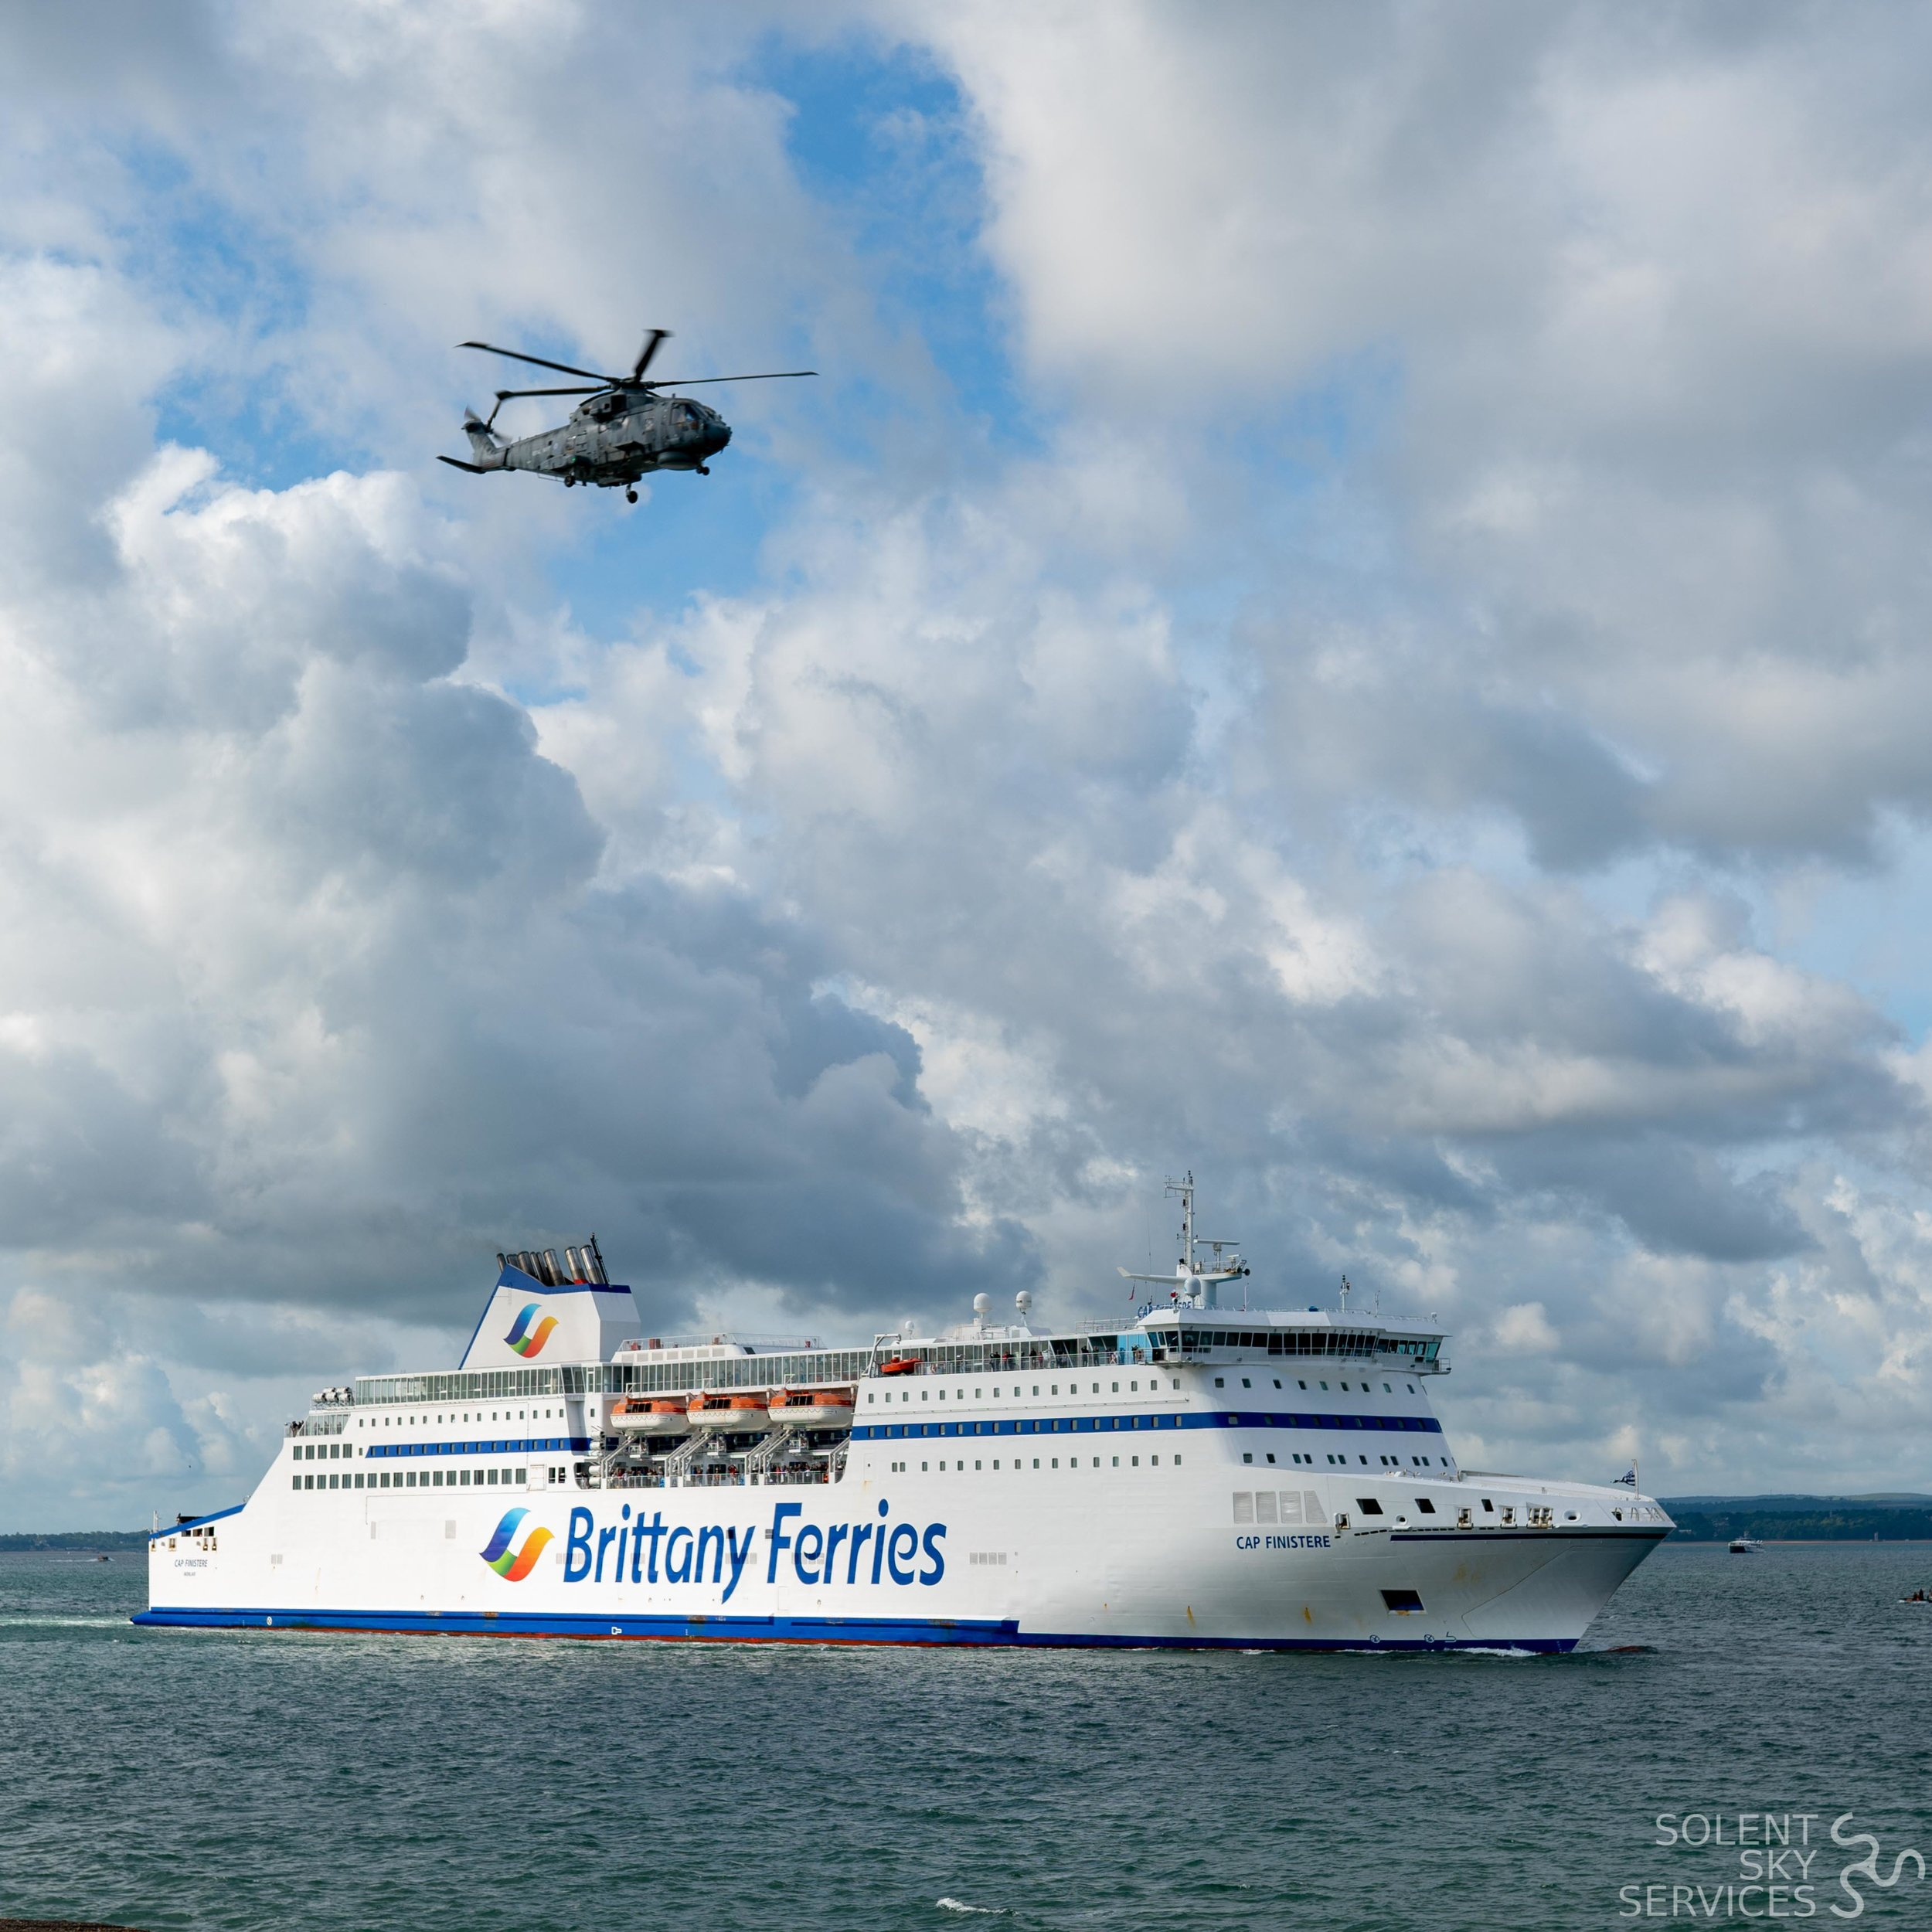 D DAY 75 - Solent Sky Services-2.JPG